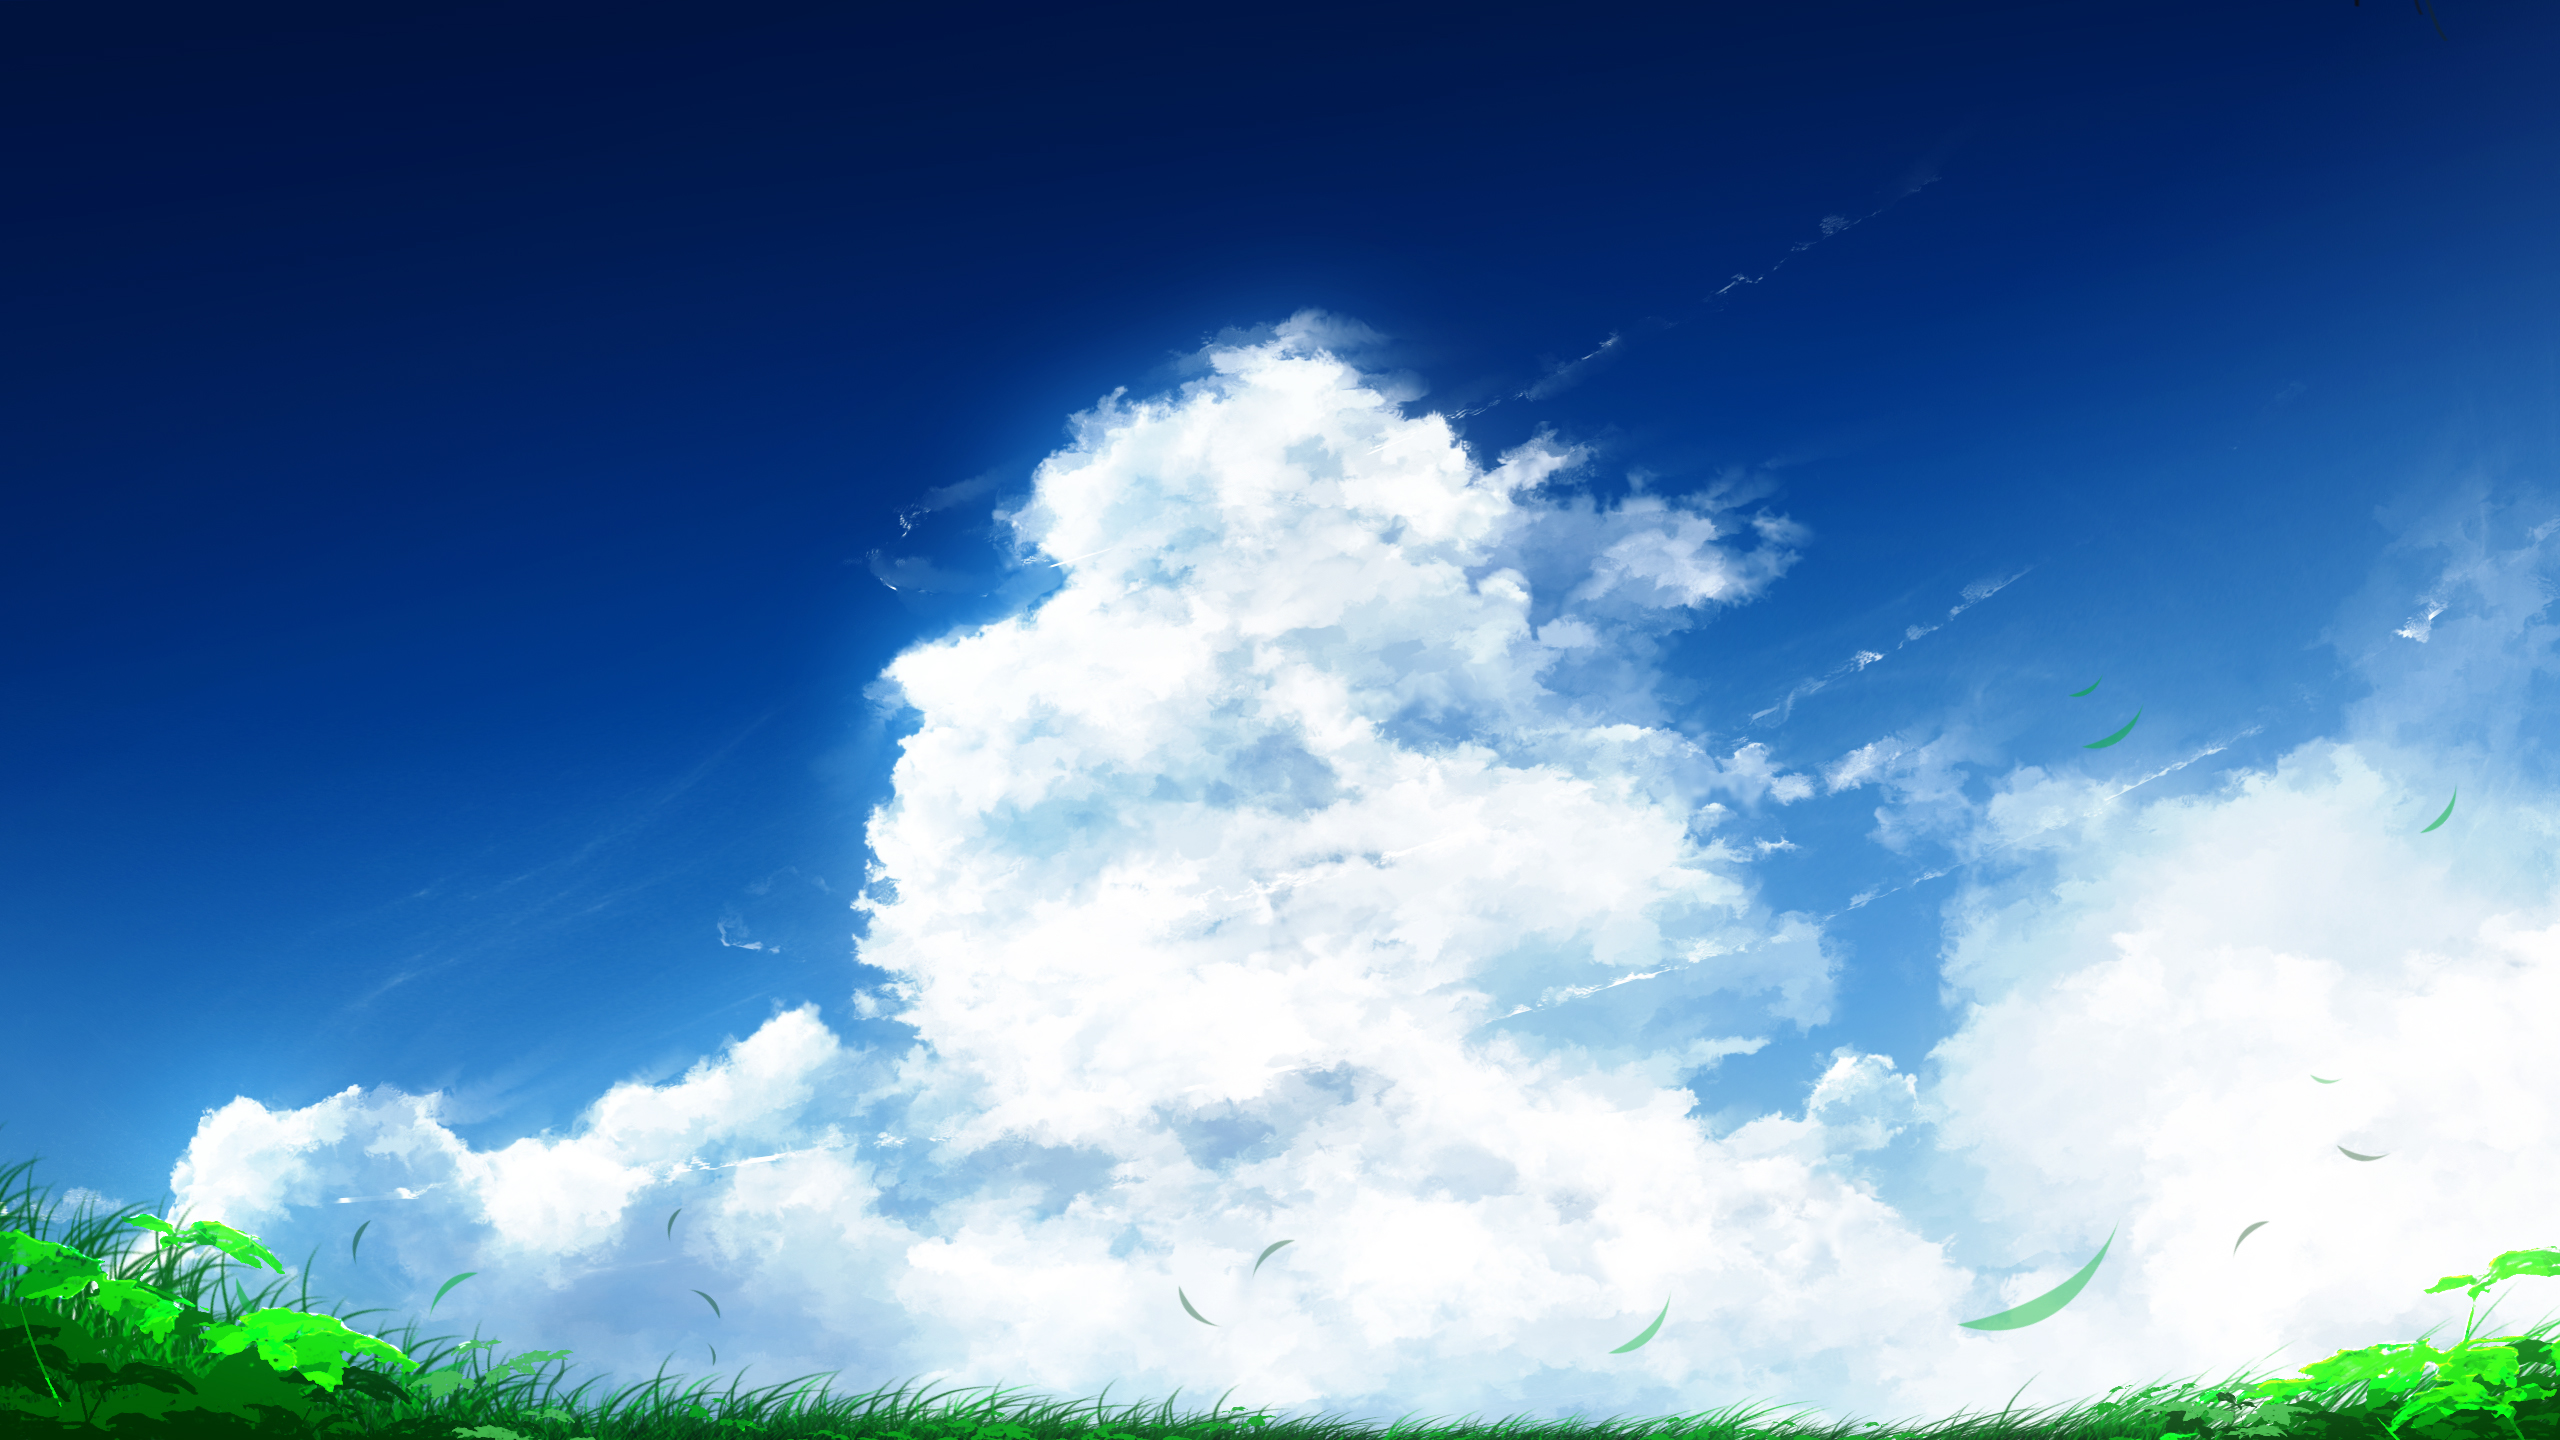 General 2560x1440 clouds sky grass artwork painting anime plants white blue